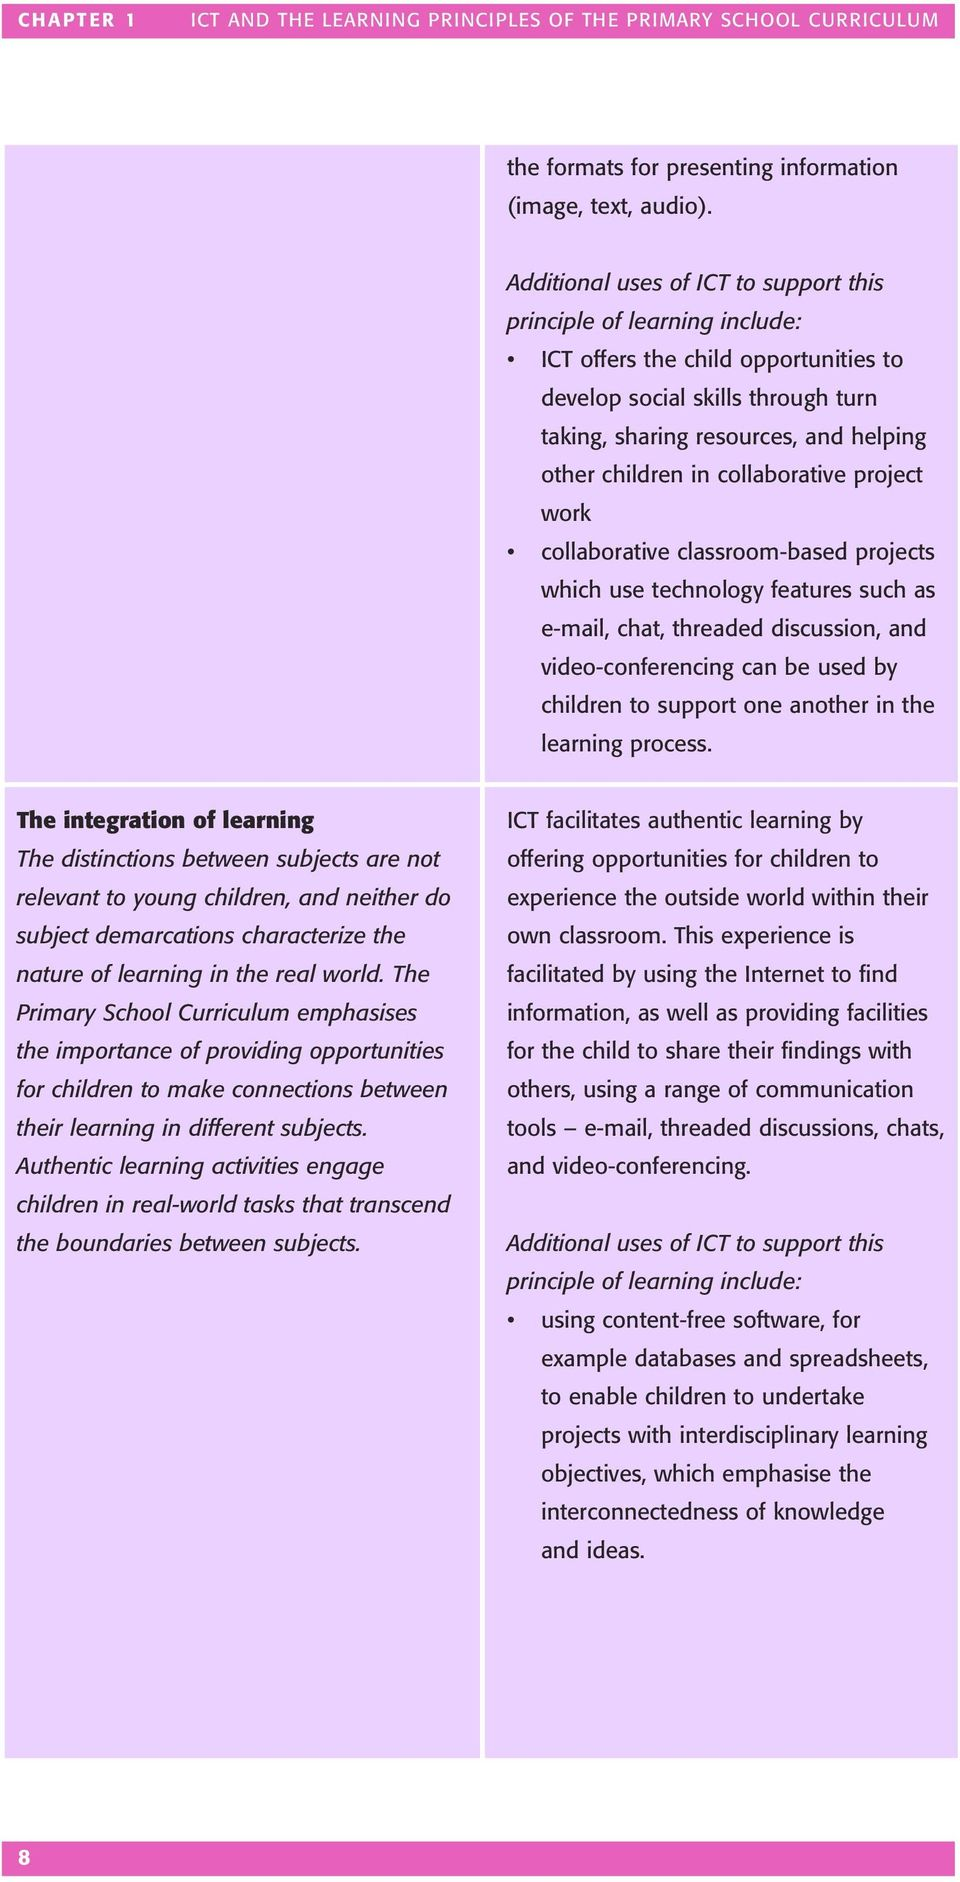 collaborative project work collaborative classroom-based projects which use technology features such as e-mail, chat, threaded discussion, and video-conferencing can be used by children to support